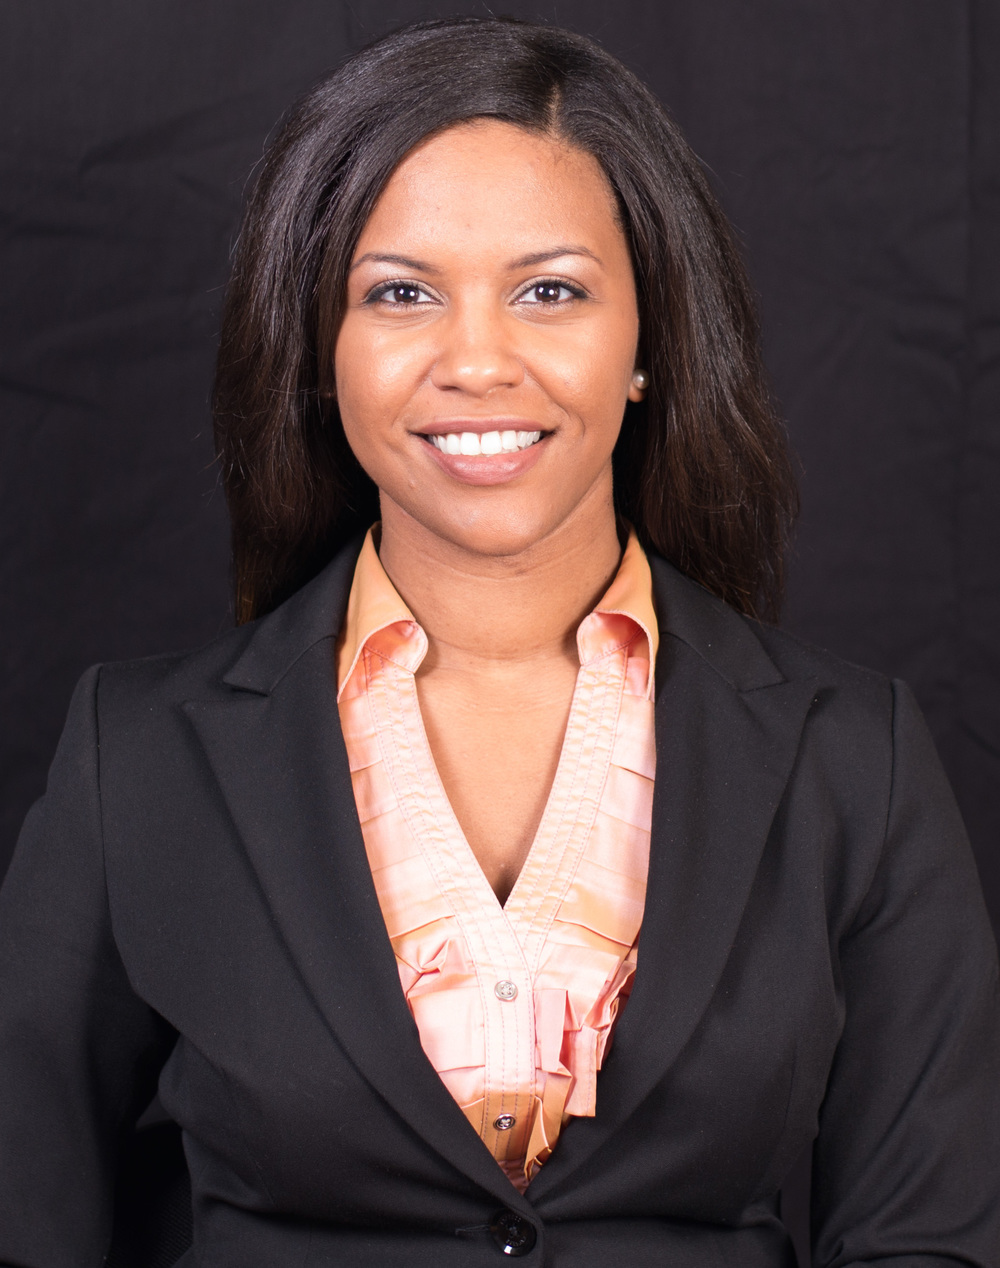 Natalie will help you succeed in Business Strategy.